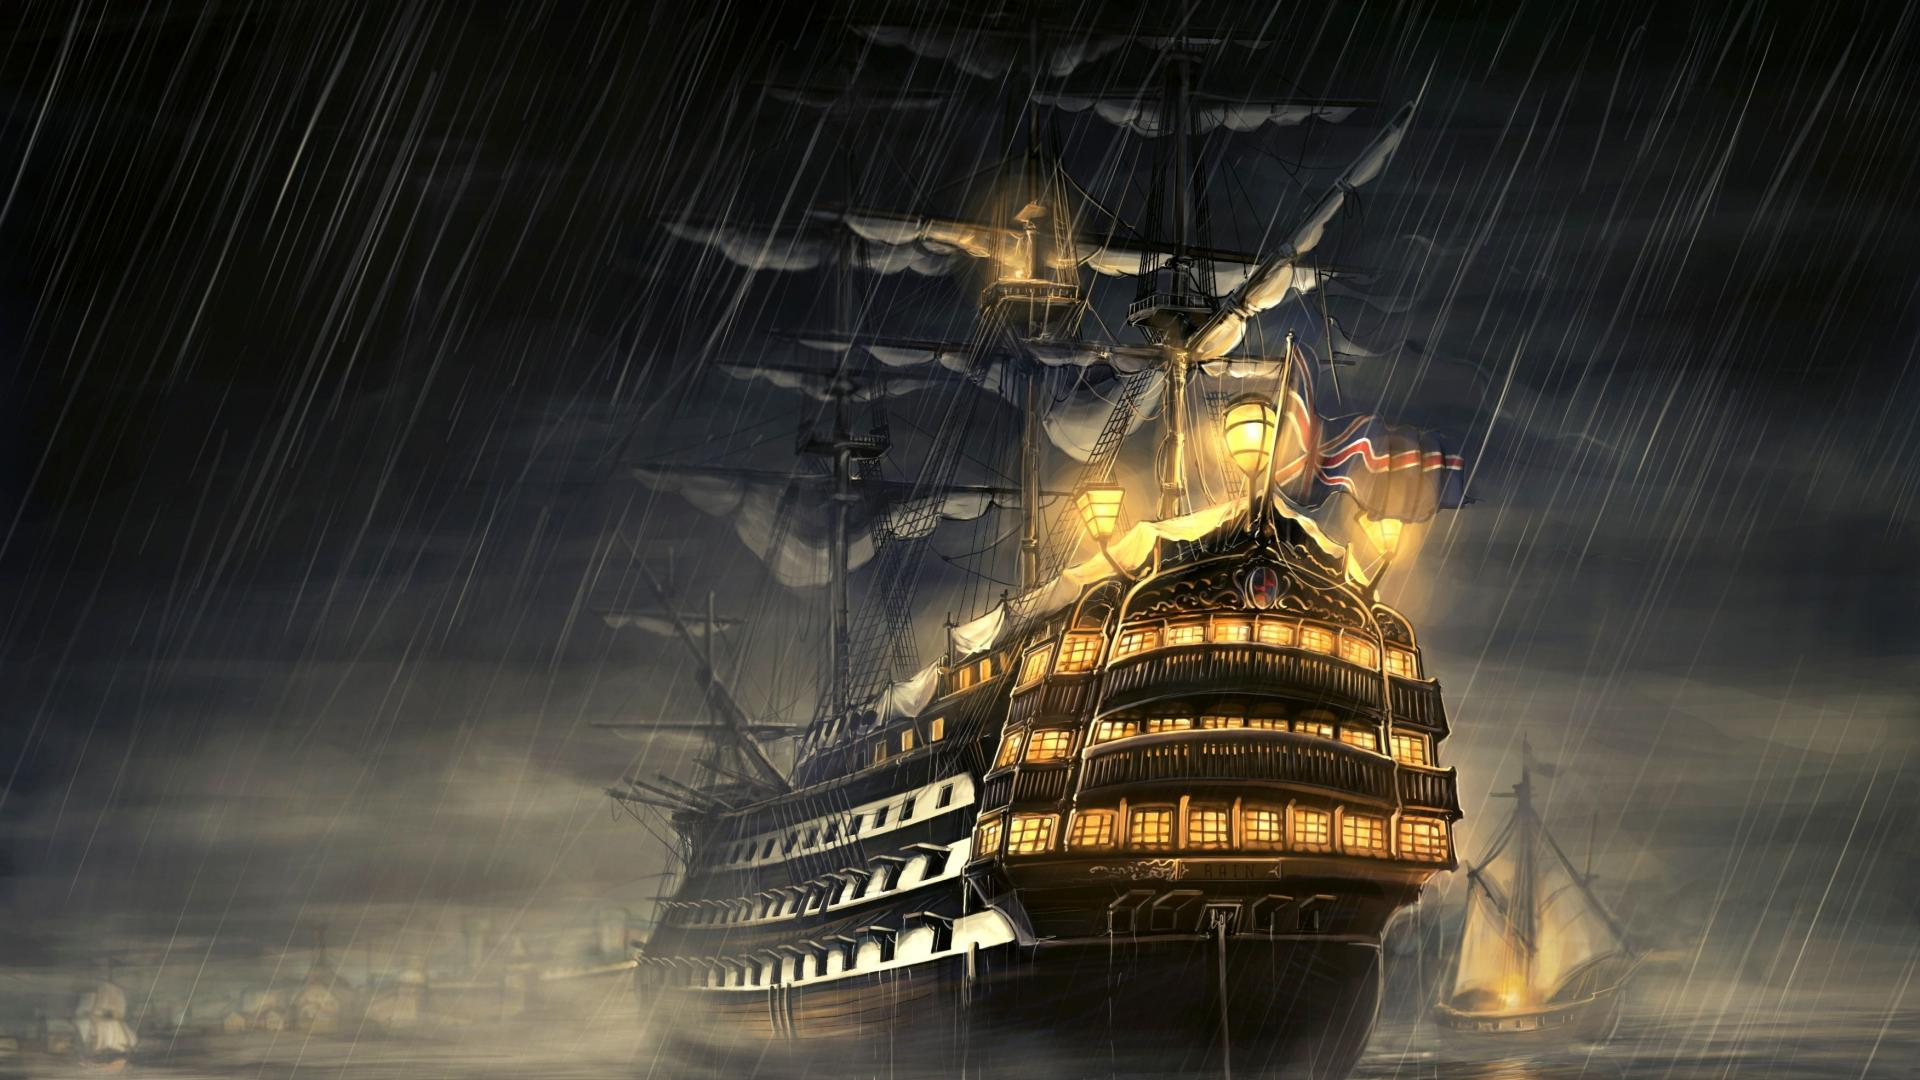 pirate hd wallpapers apple iphone - photo #10